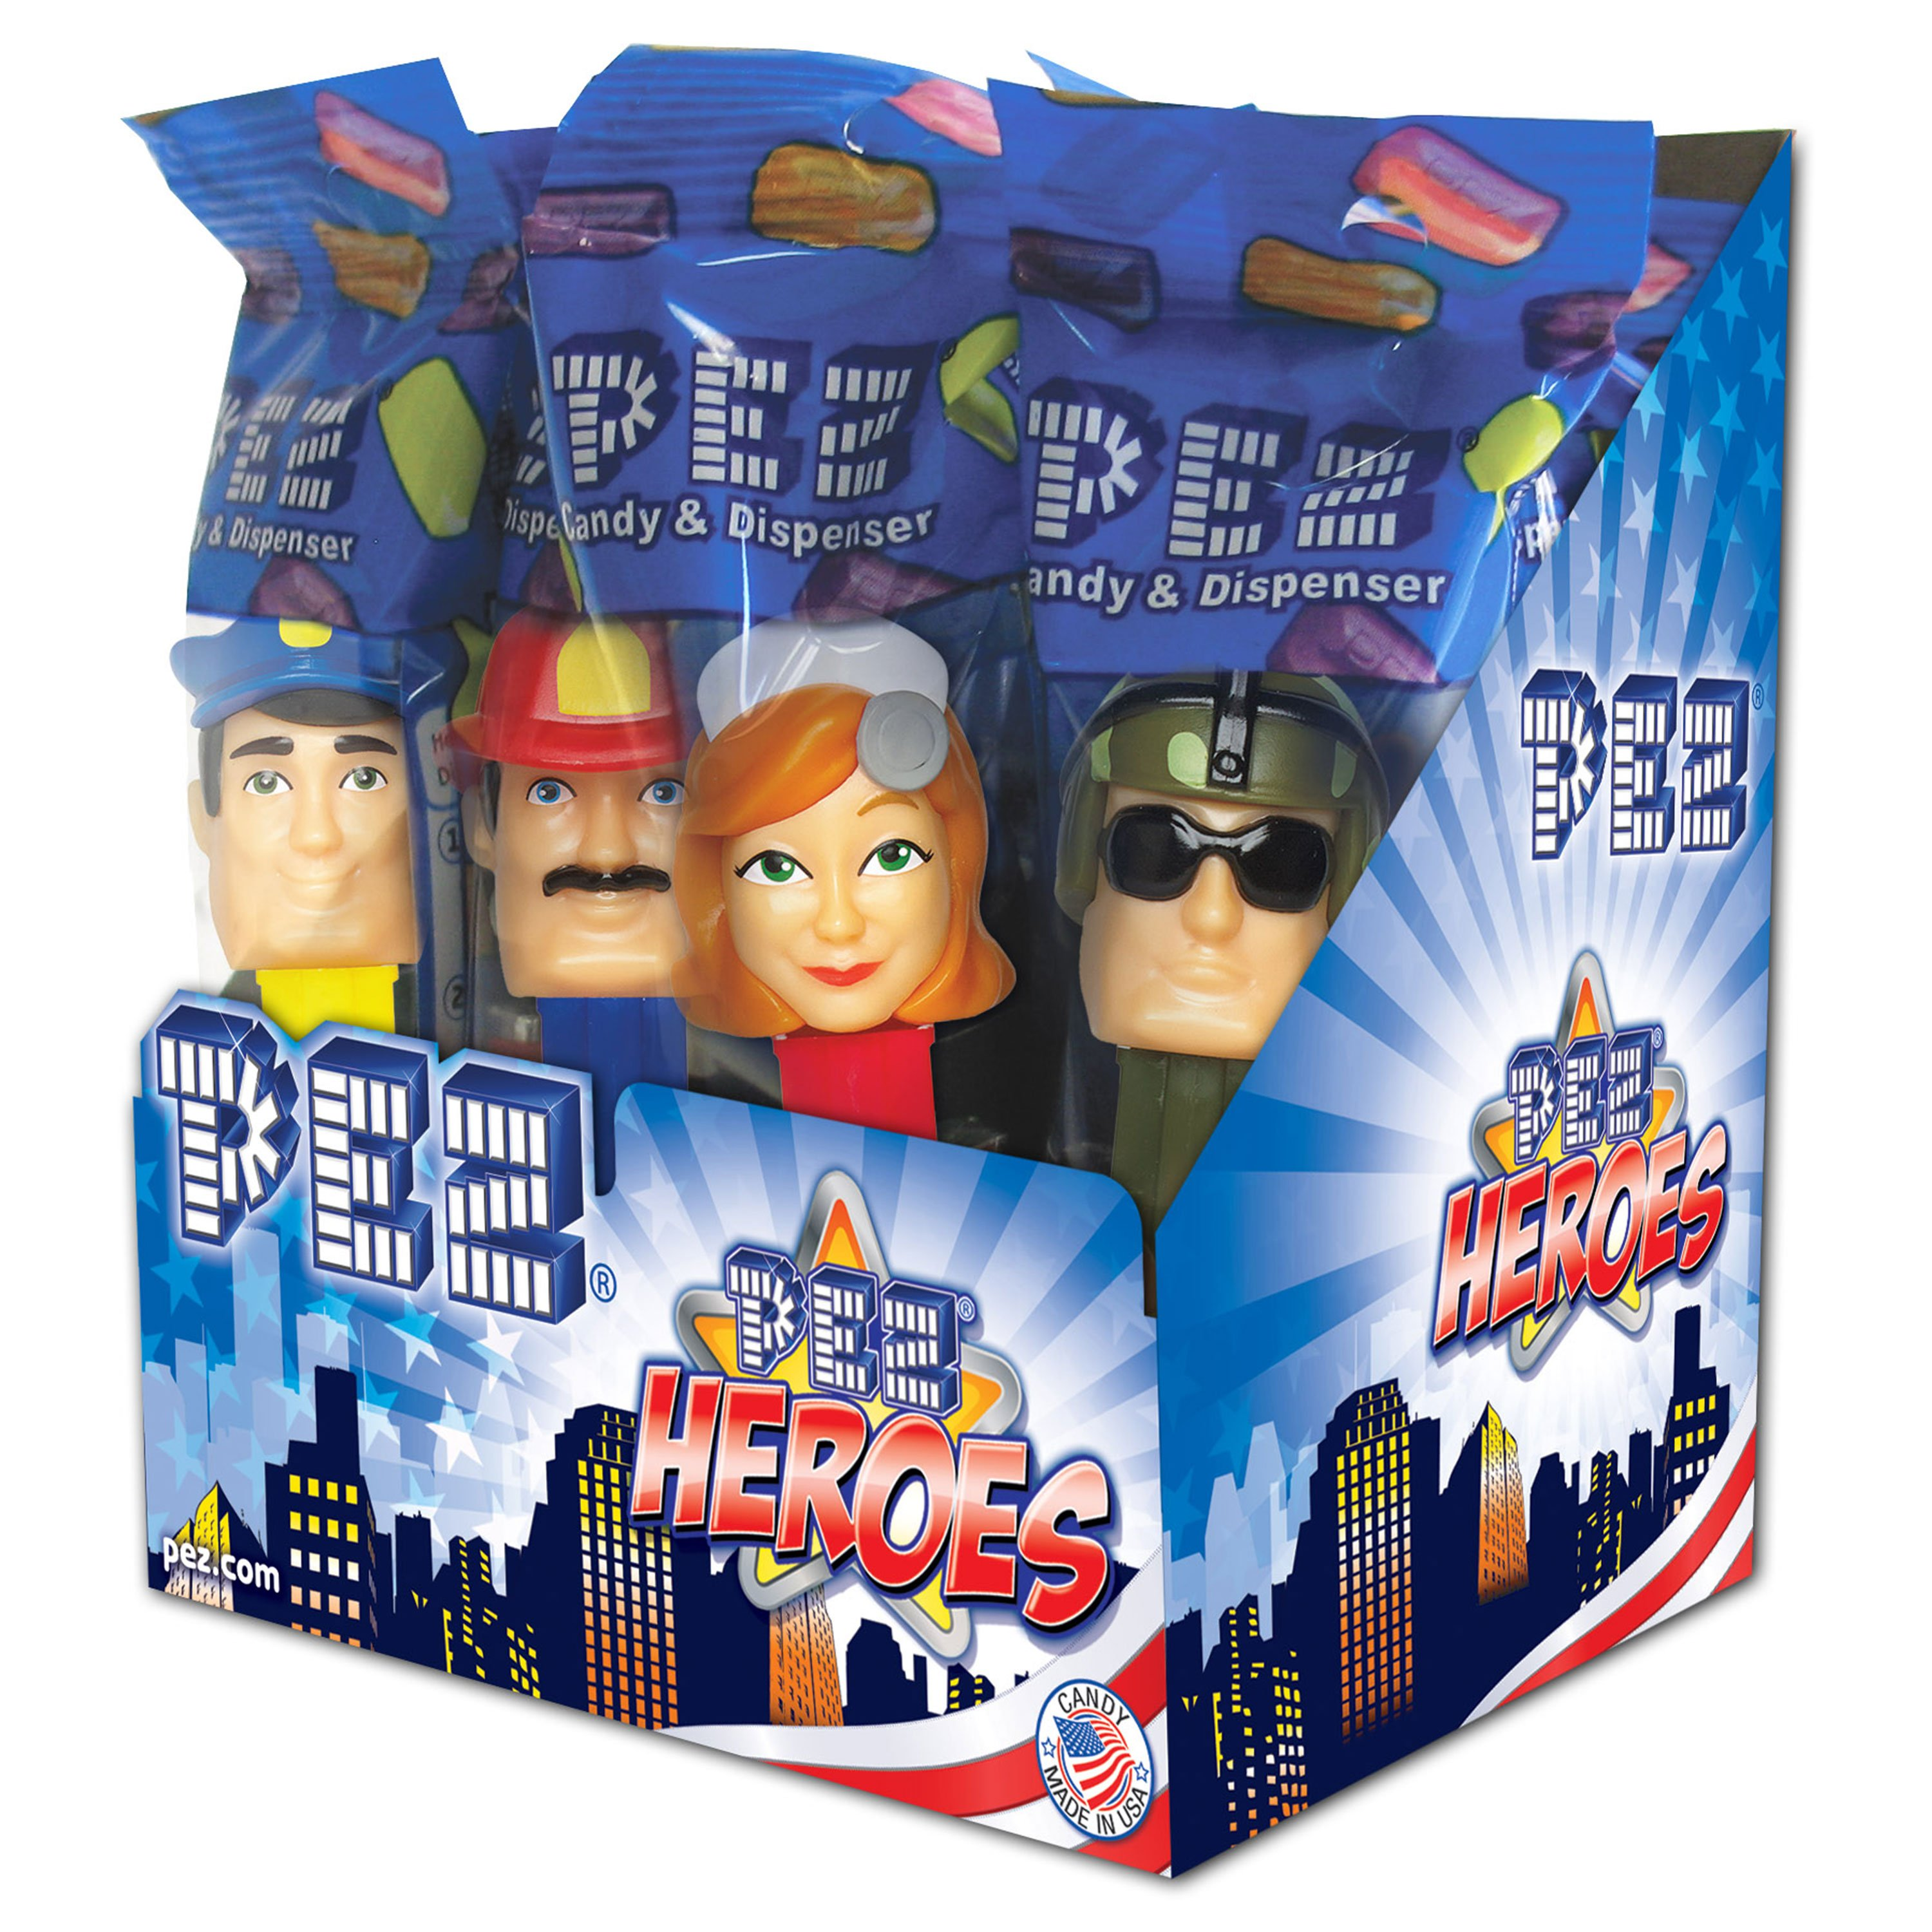 PEZ Candy PEZ Heroes Assortment, candy dispenser plus 2 rolls of assorted fruit candy, box of 12